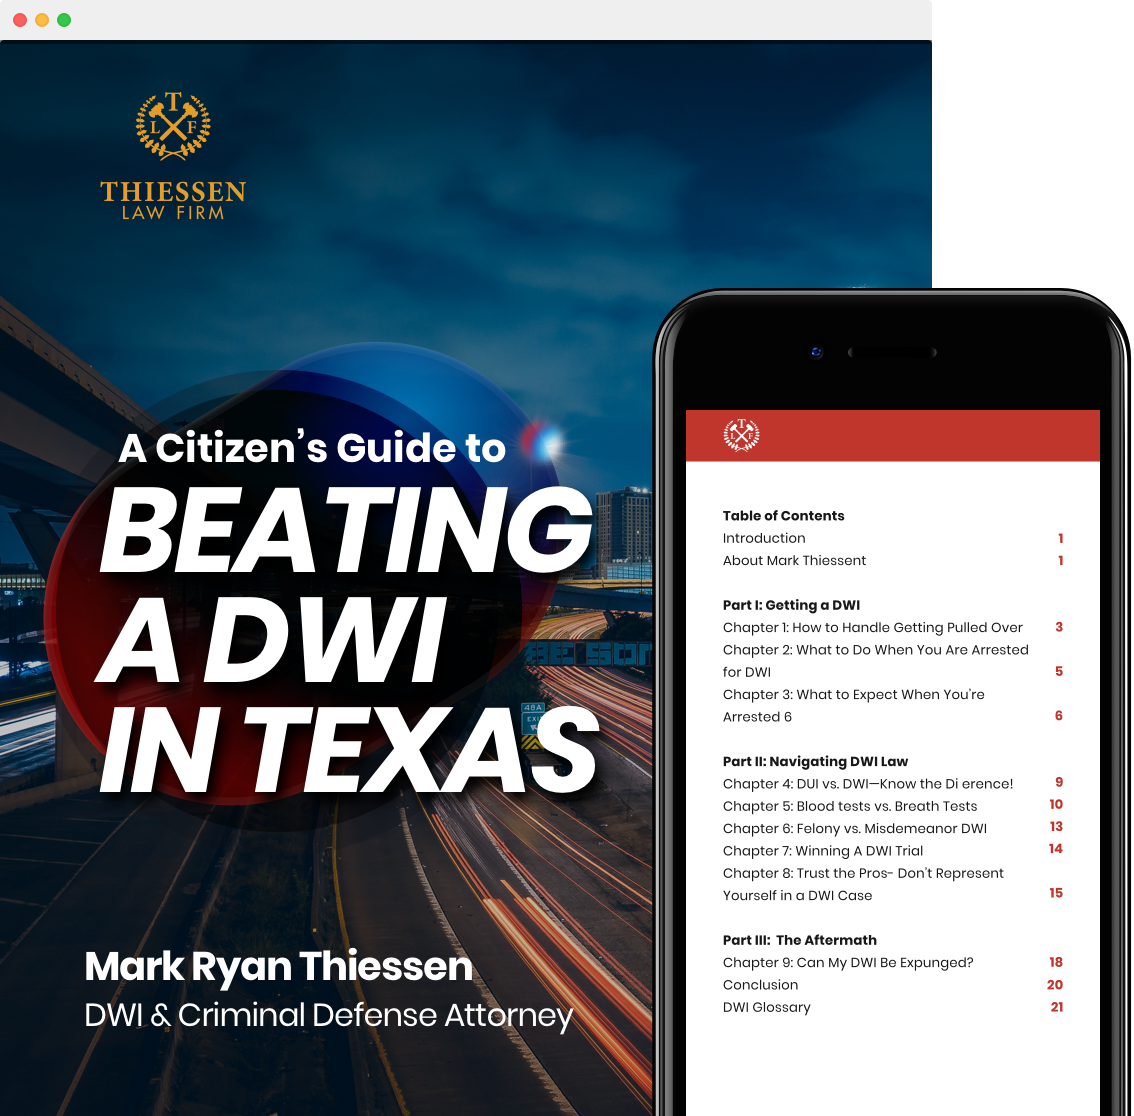 A Citizens Guide to beating a DWI in Texas